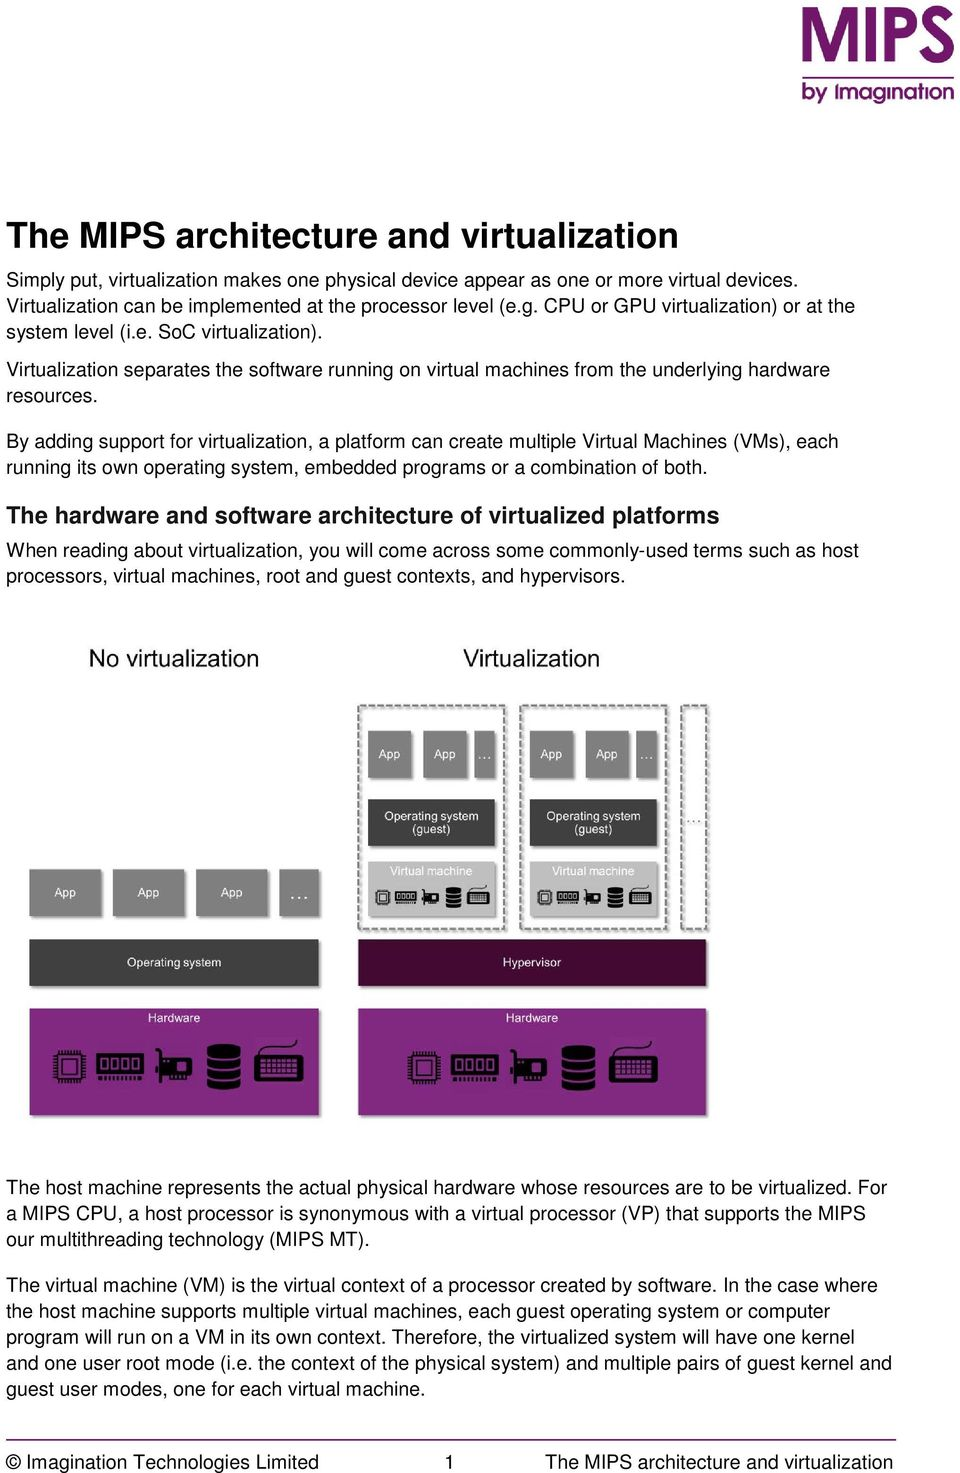 By adding support for virtualization, a platform can create multiple Virtual Machines (VMs), each running its own operating system, embedded programs or a combination of both.